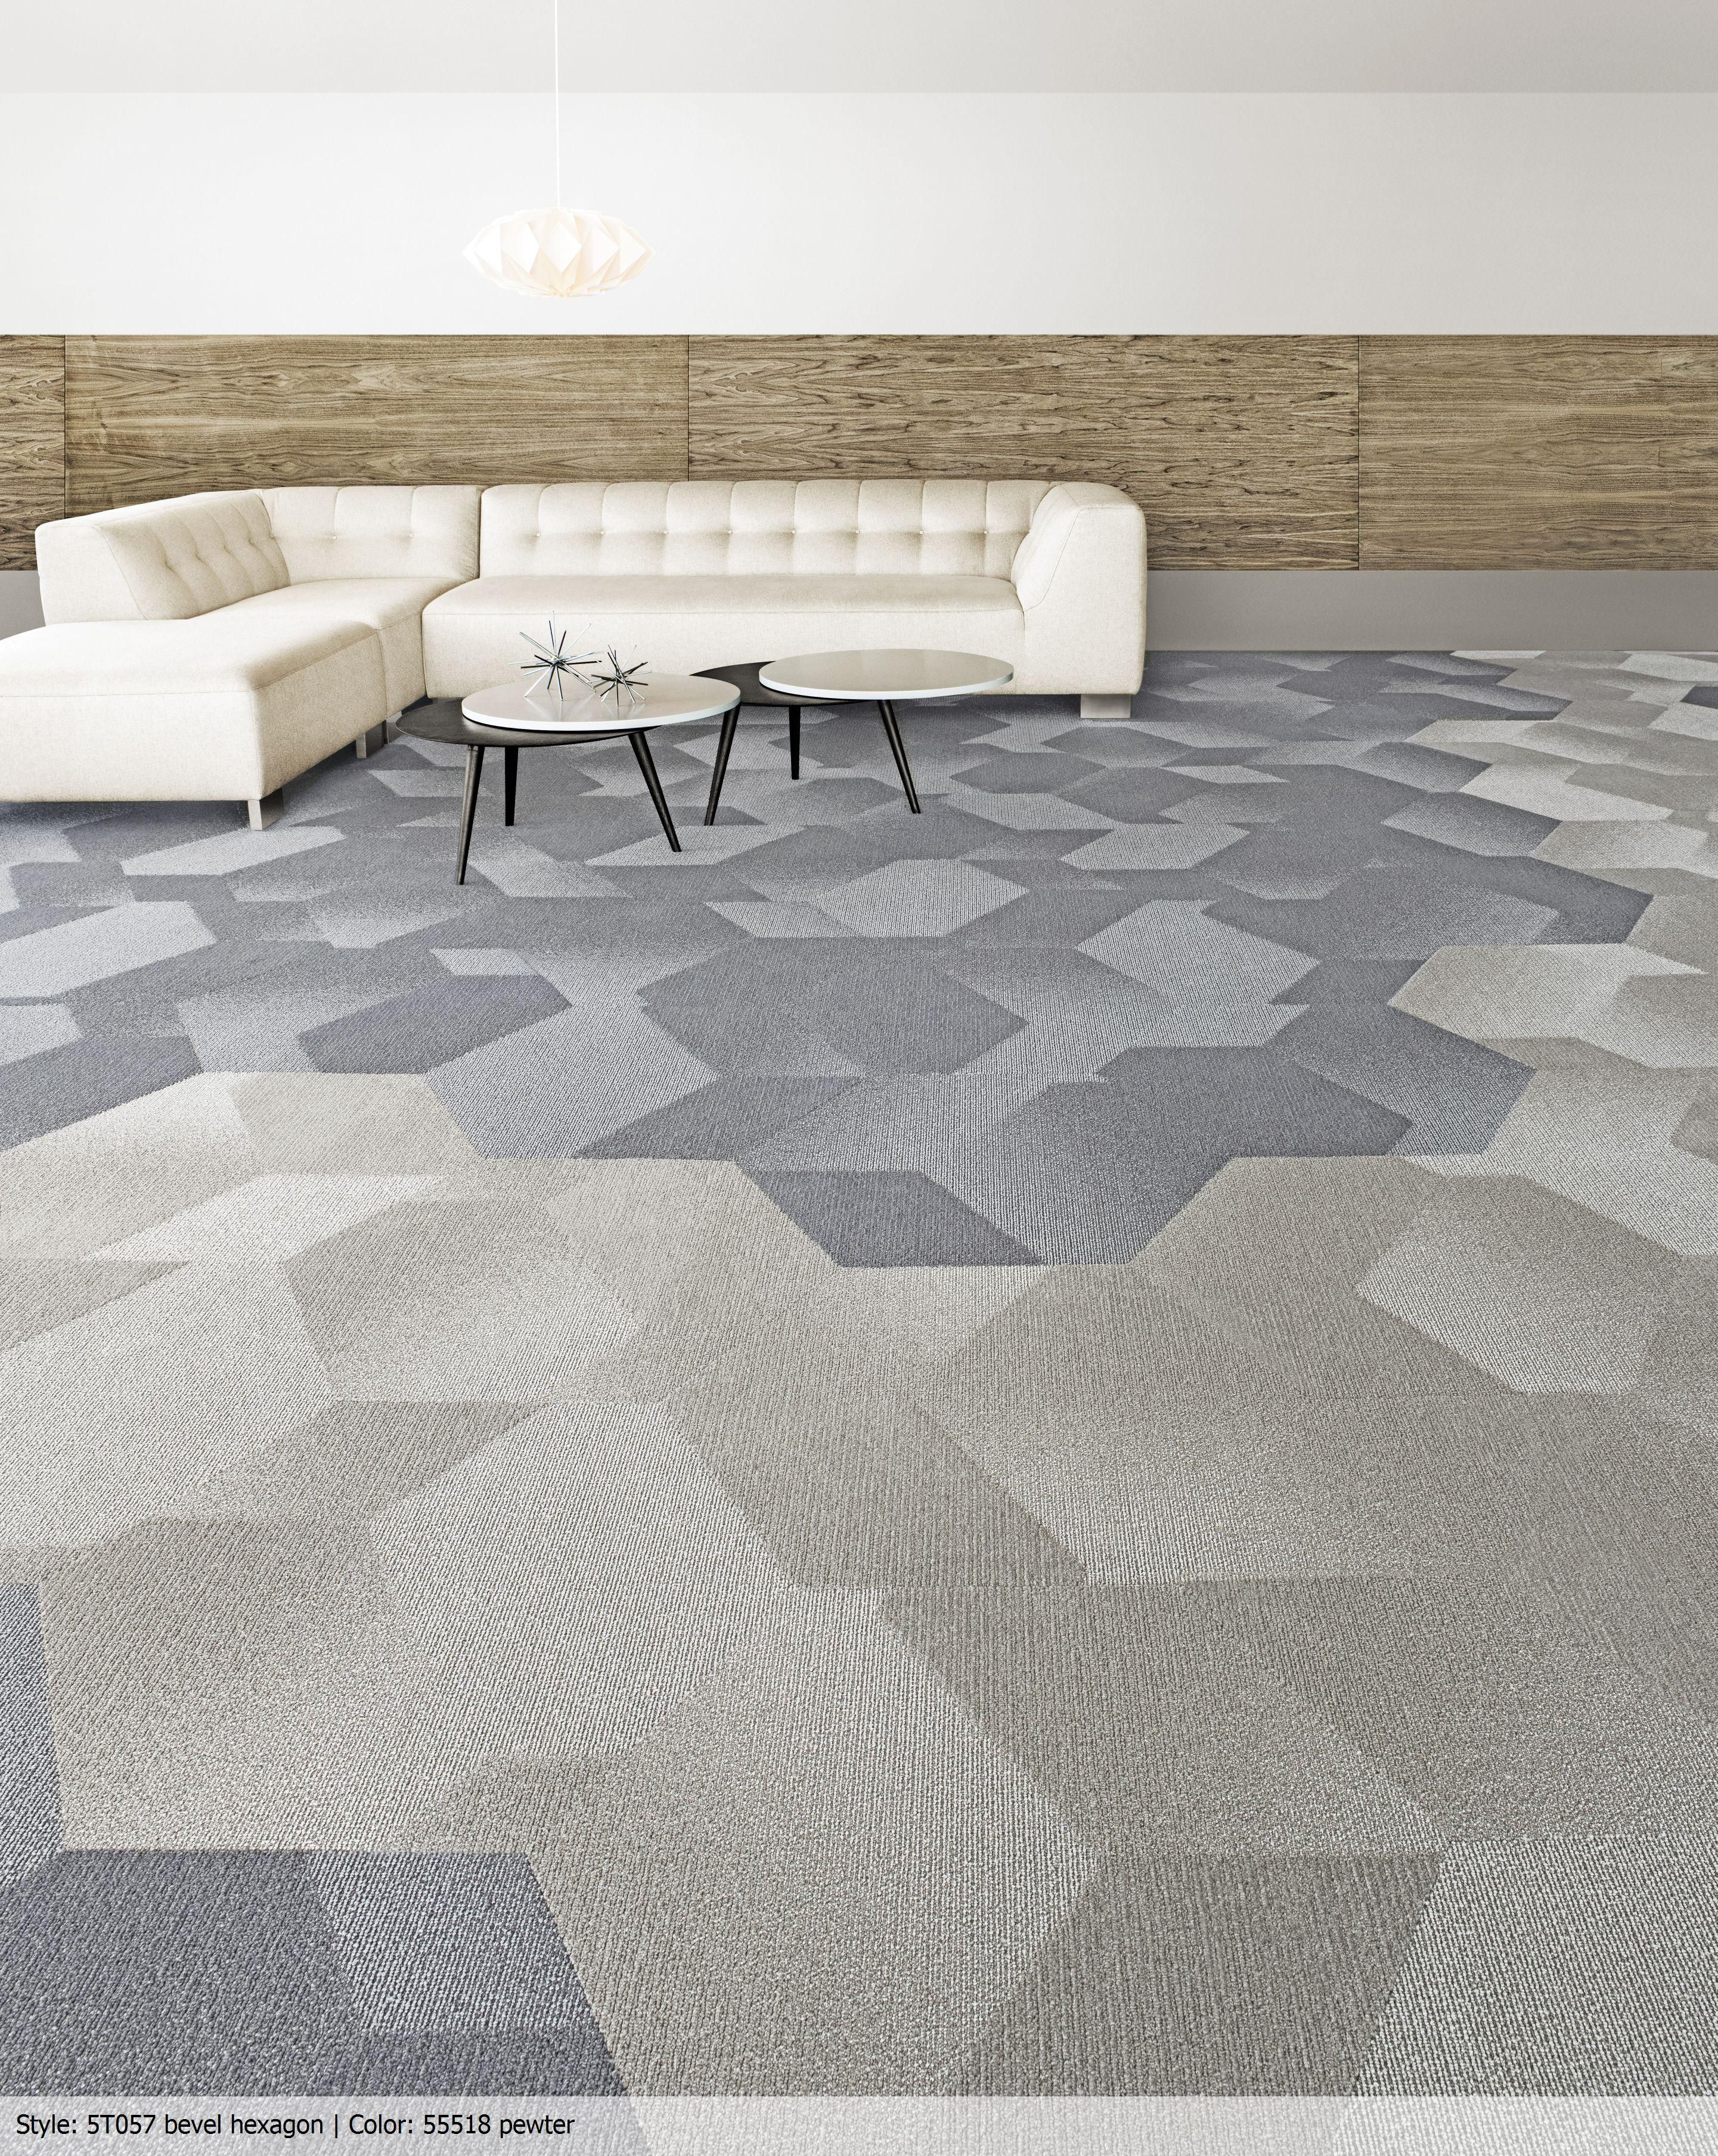 Bevel Offers A Visual Deconstruction Of The Hexagon Both Through A Dimensional Layering Of Shapes And Through A P Carpet Tiles Shaw Carpet Commercial Carpet